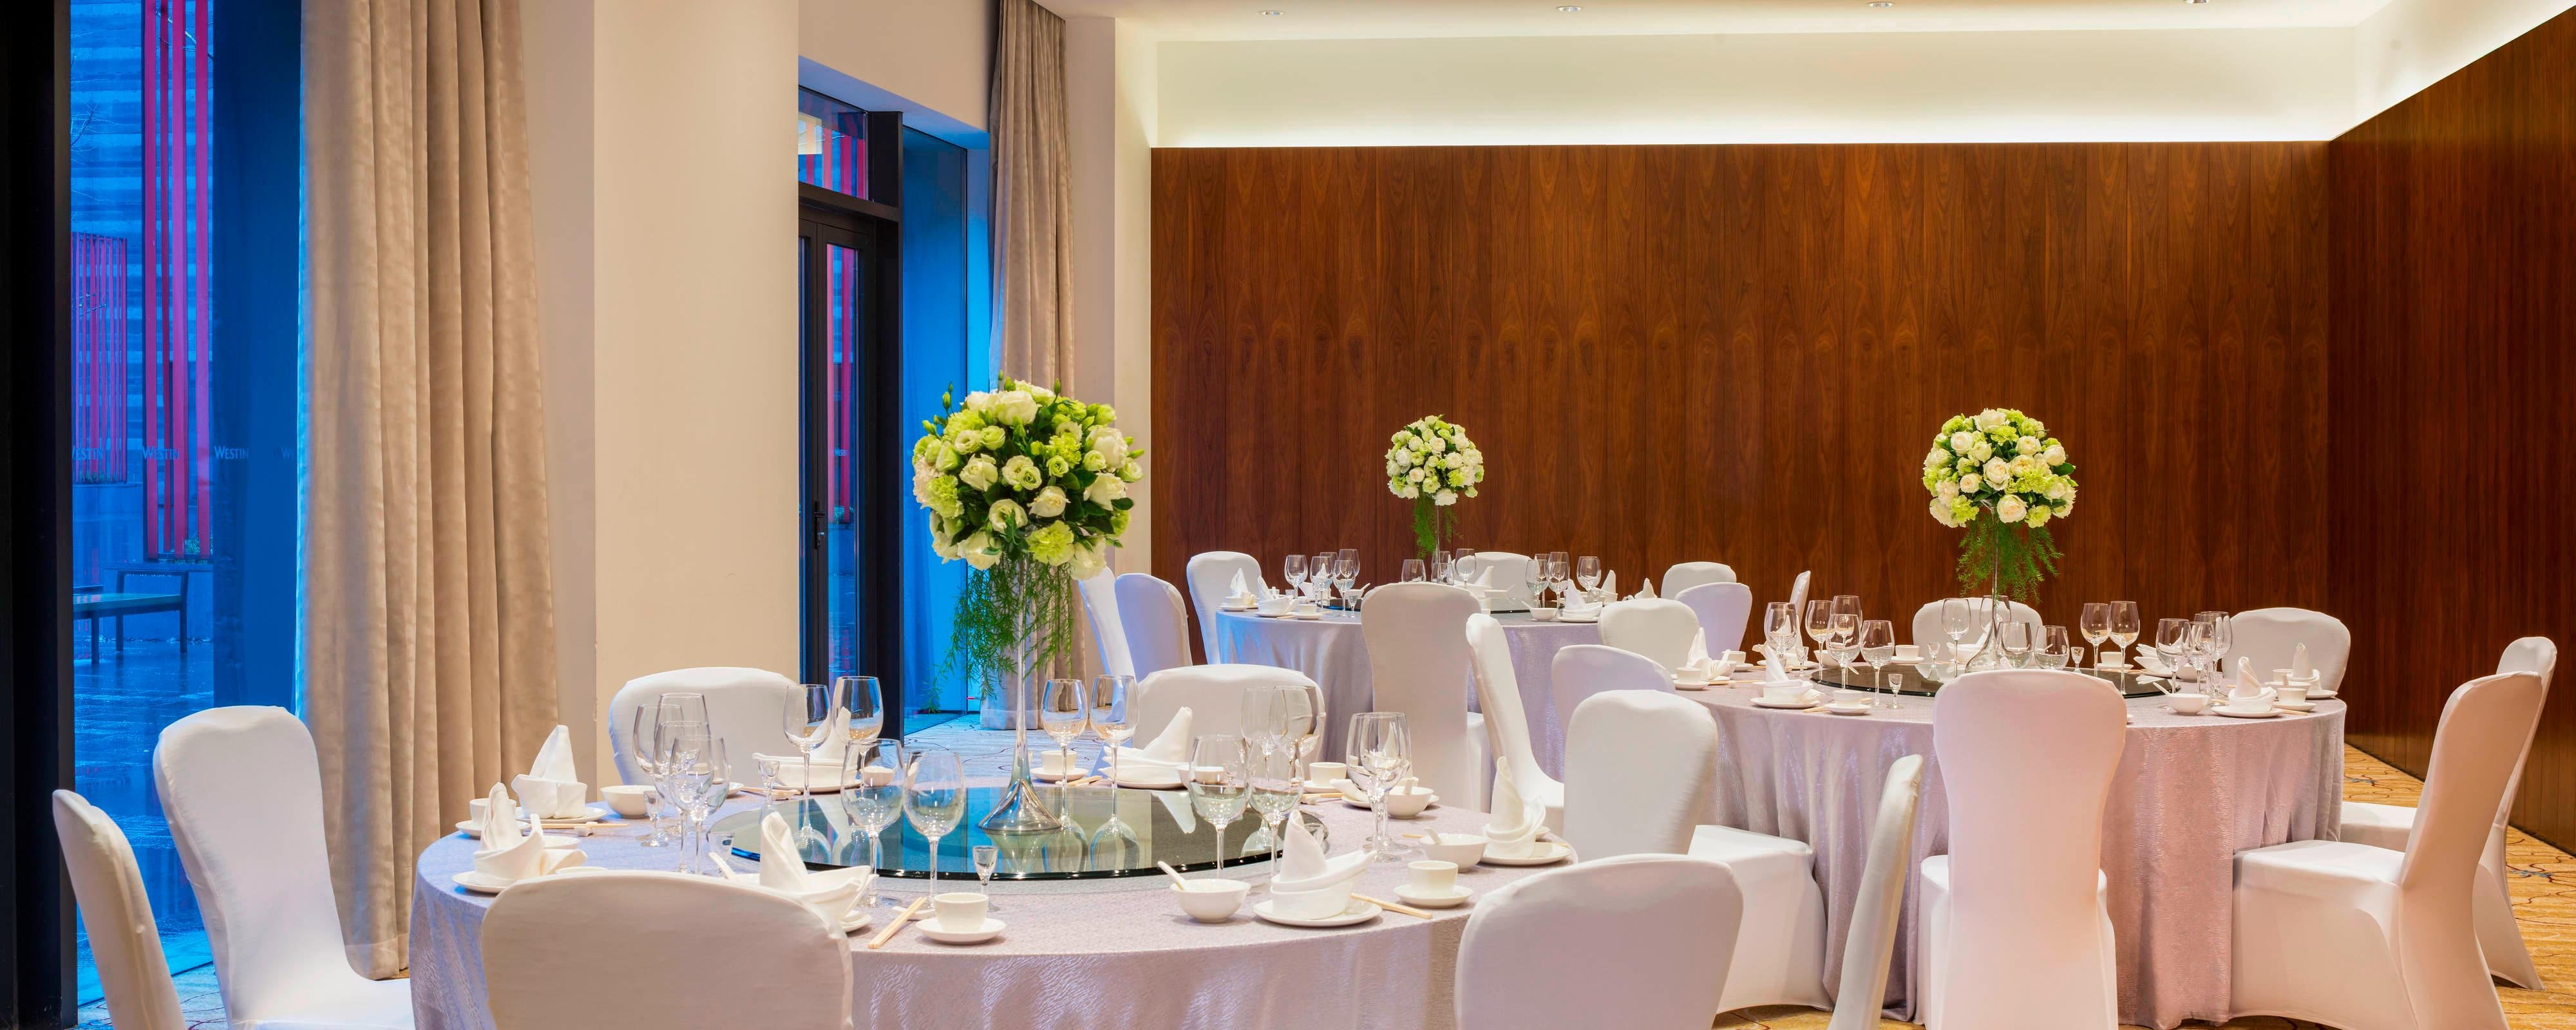 Function Room Banquet